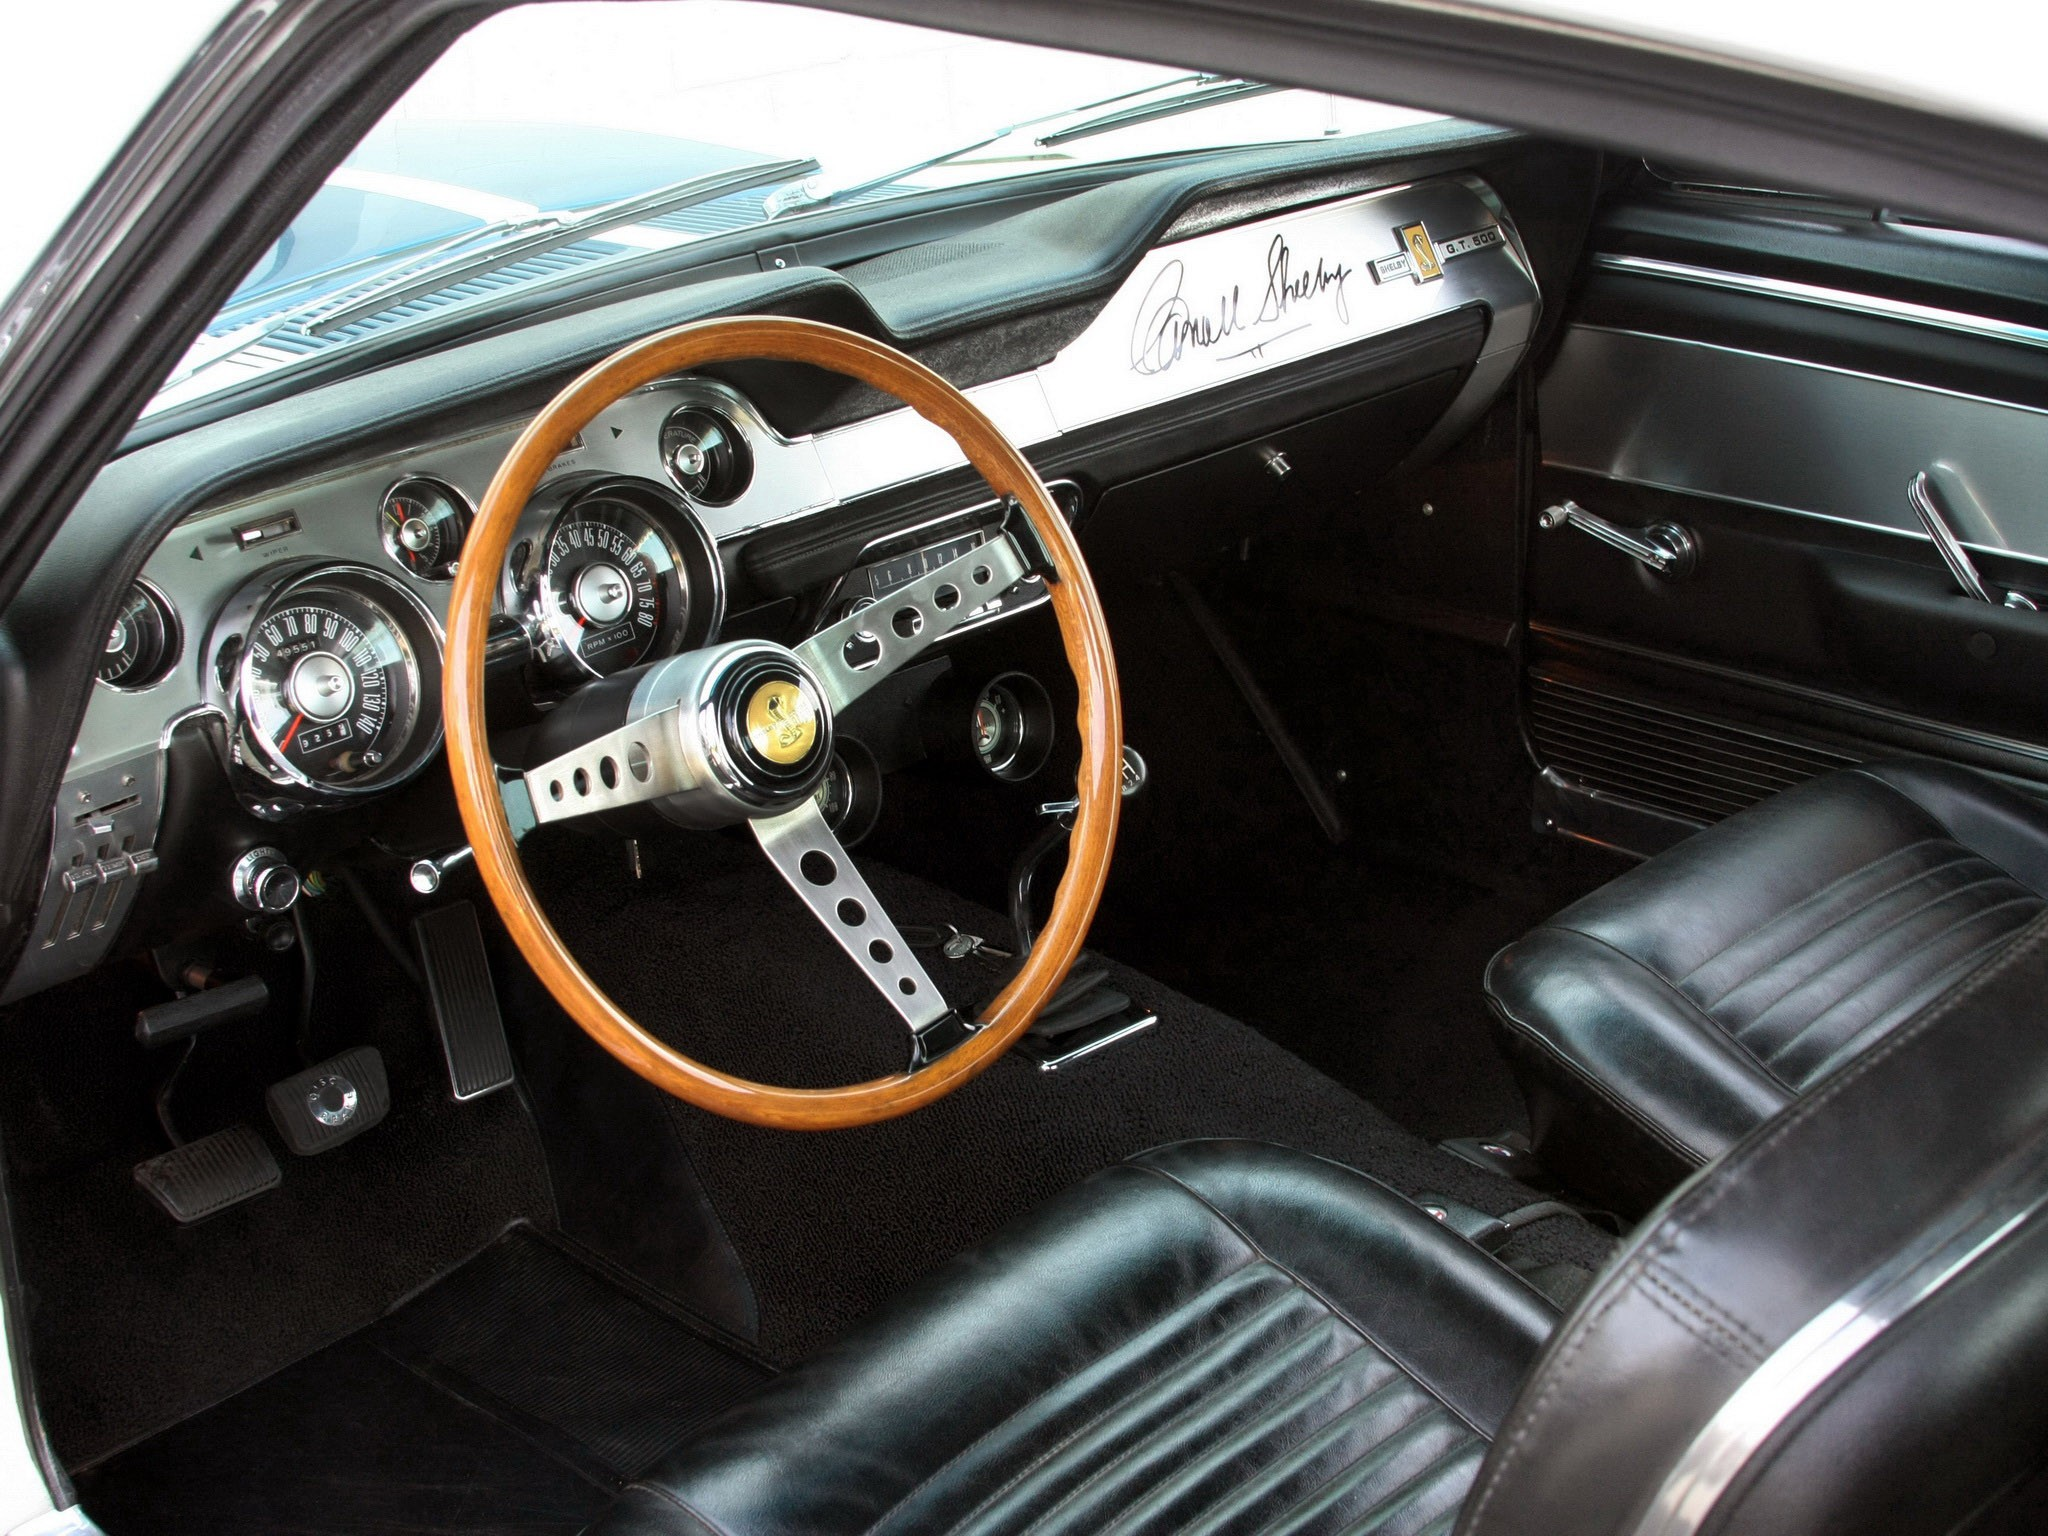 Ford Mustang Shelby Gt500 1967 характеристики фото